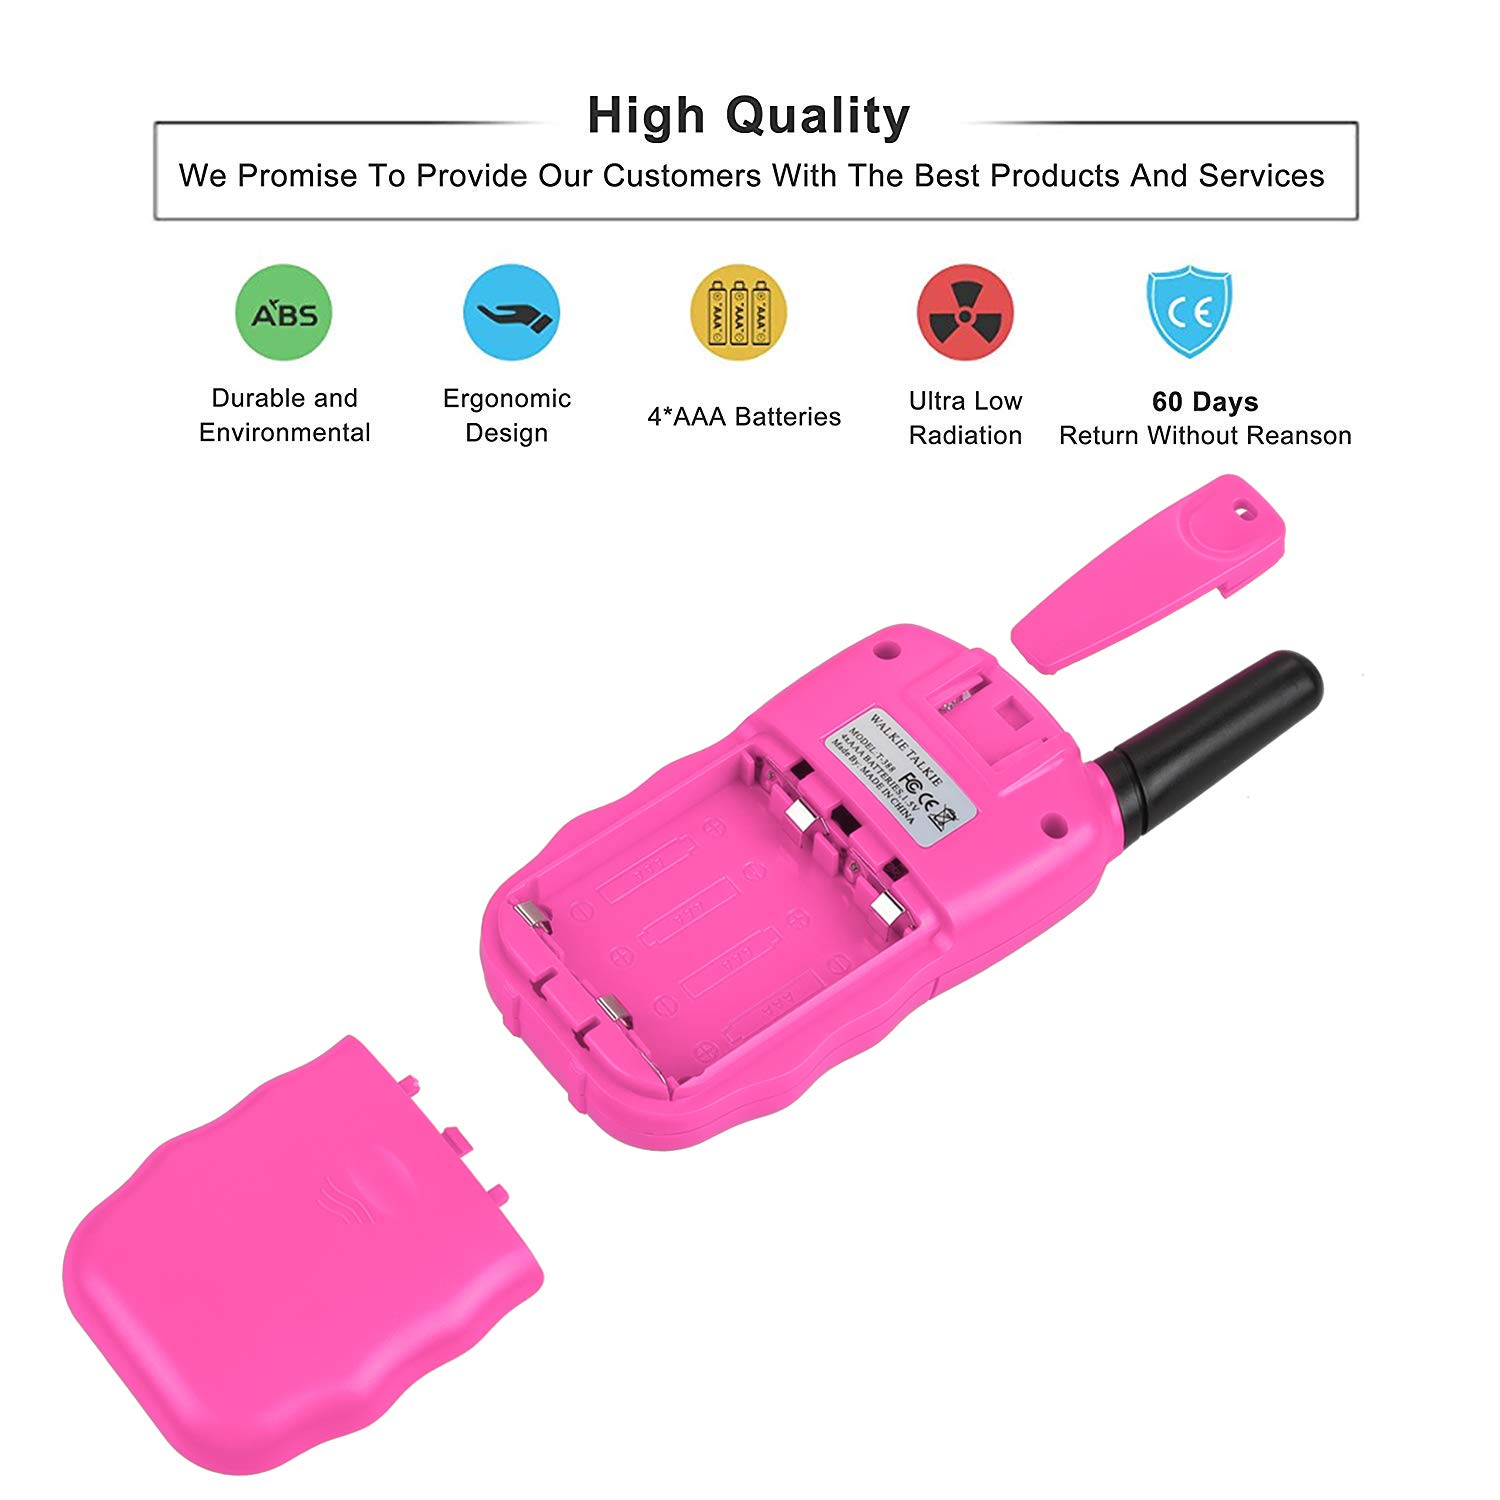 Anpro walkie talkies and Telescope Sets for Kids, 22 Channel 2 Way Radio 3 Mile Long Range Handheld Kids Walkie Talkies, Best Gifts & Top Toys for Boy & Girls for Outdoor Adventure Game(Pink) by Anpro (Image #4)